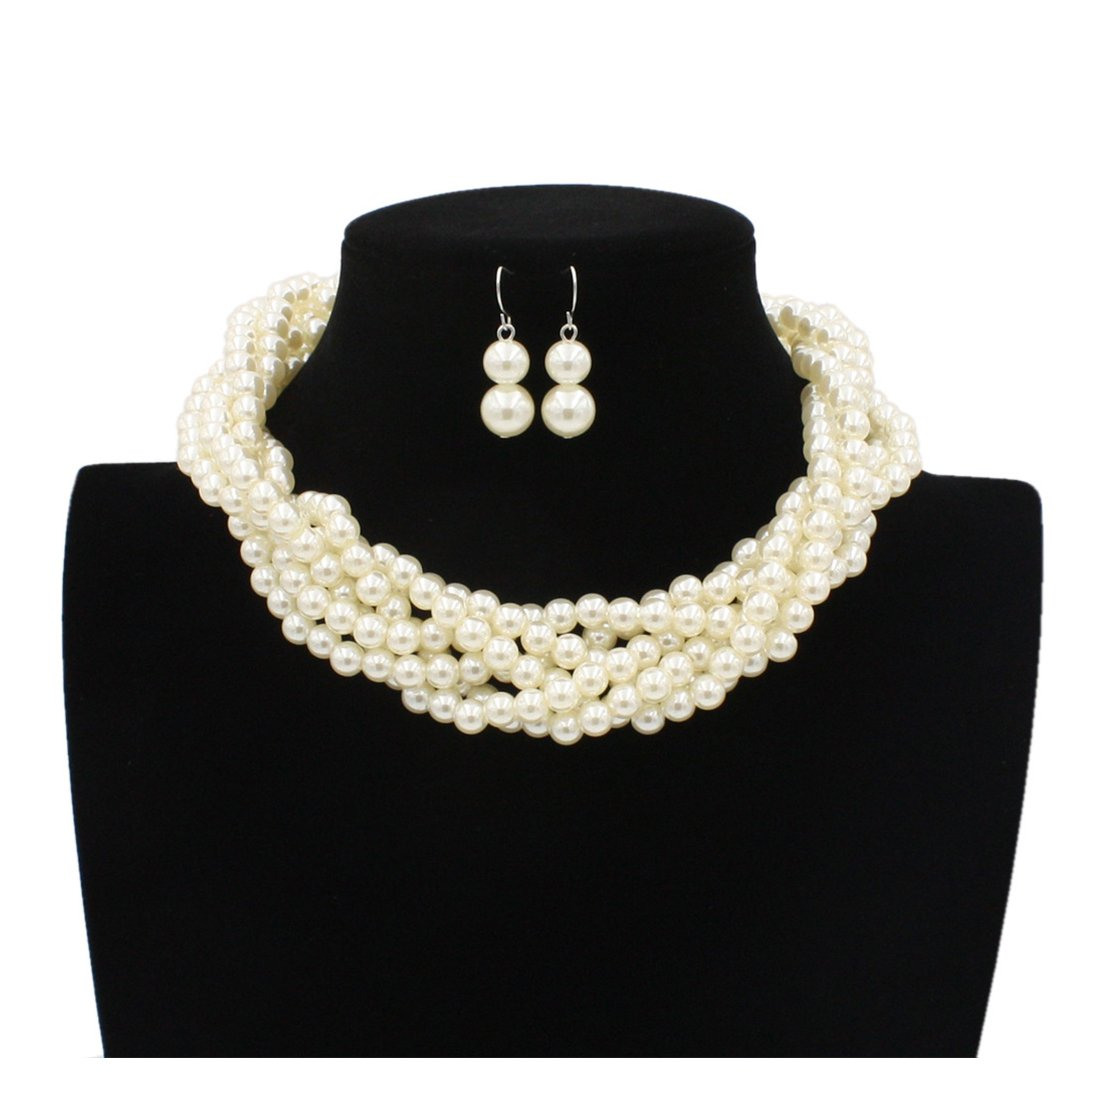 Lanue Multilayer Strand Faux Pearls Beads Cluster Choker Necklace and Earrings Set